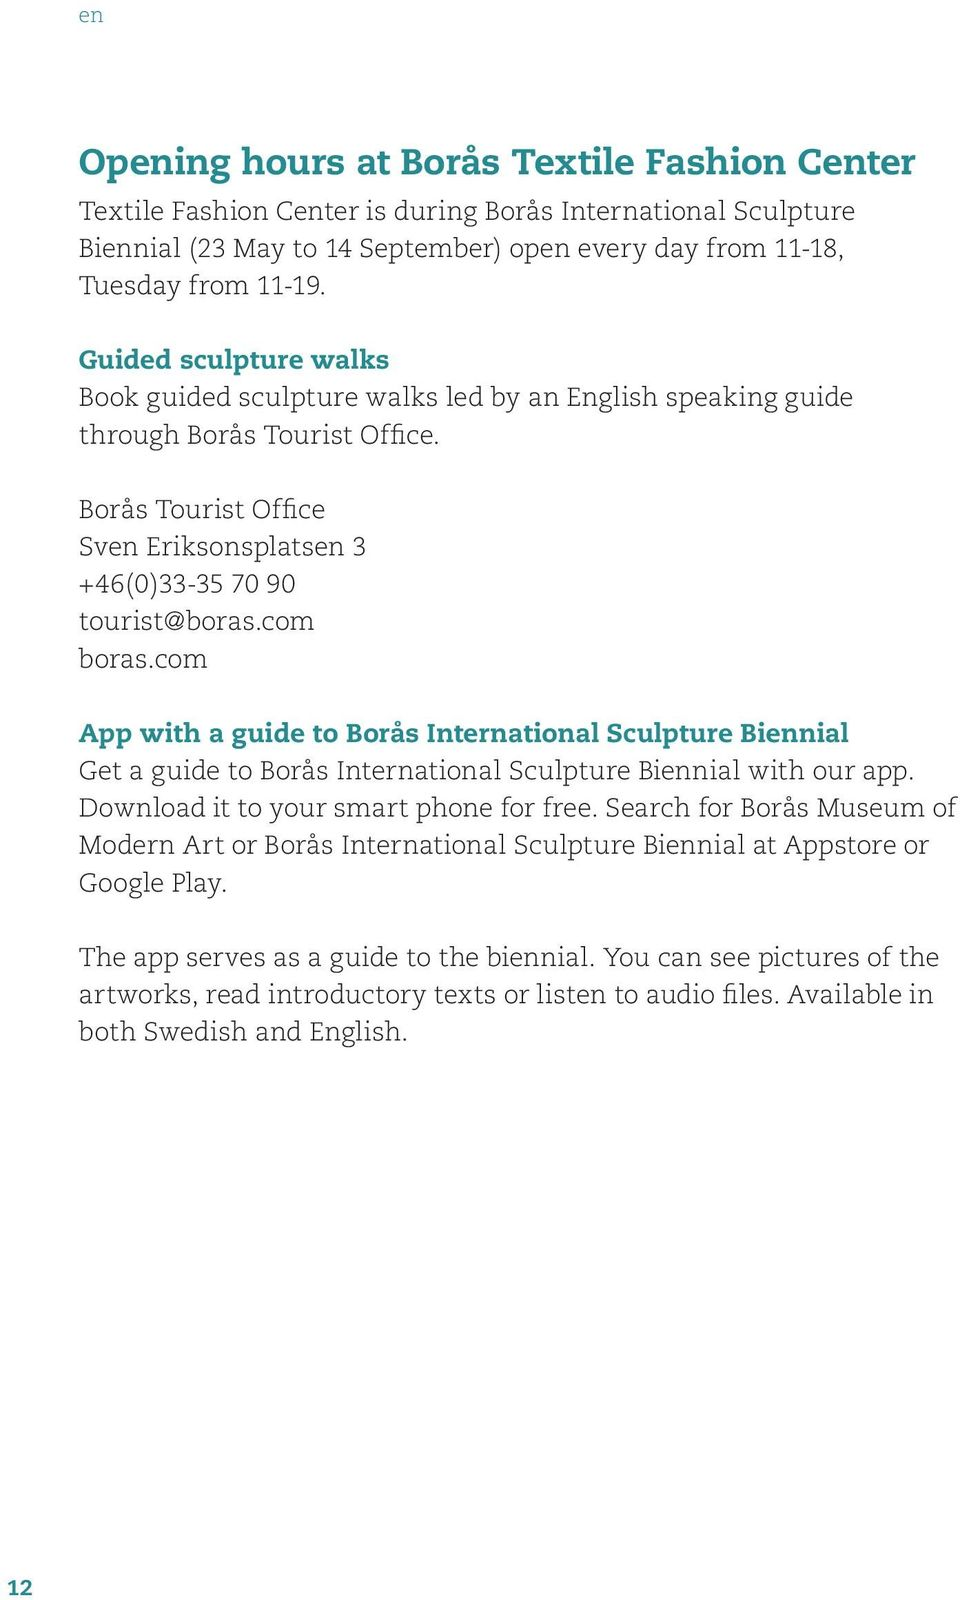 com App with a guide to Borås International Sculpture Biennial Get a guide to Borås International Sculpture Biennial with our app. Download it to your smart phone for free.